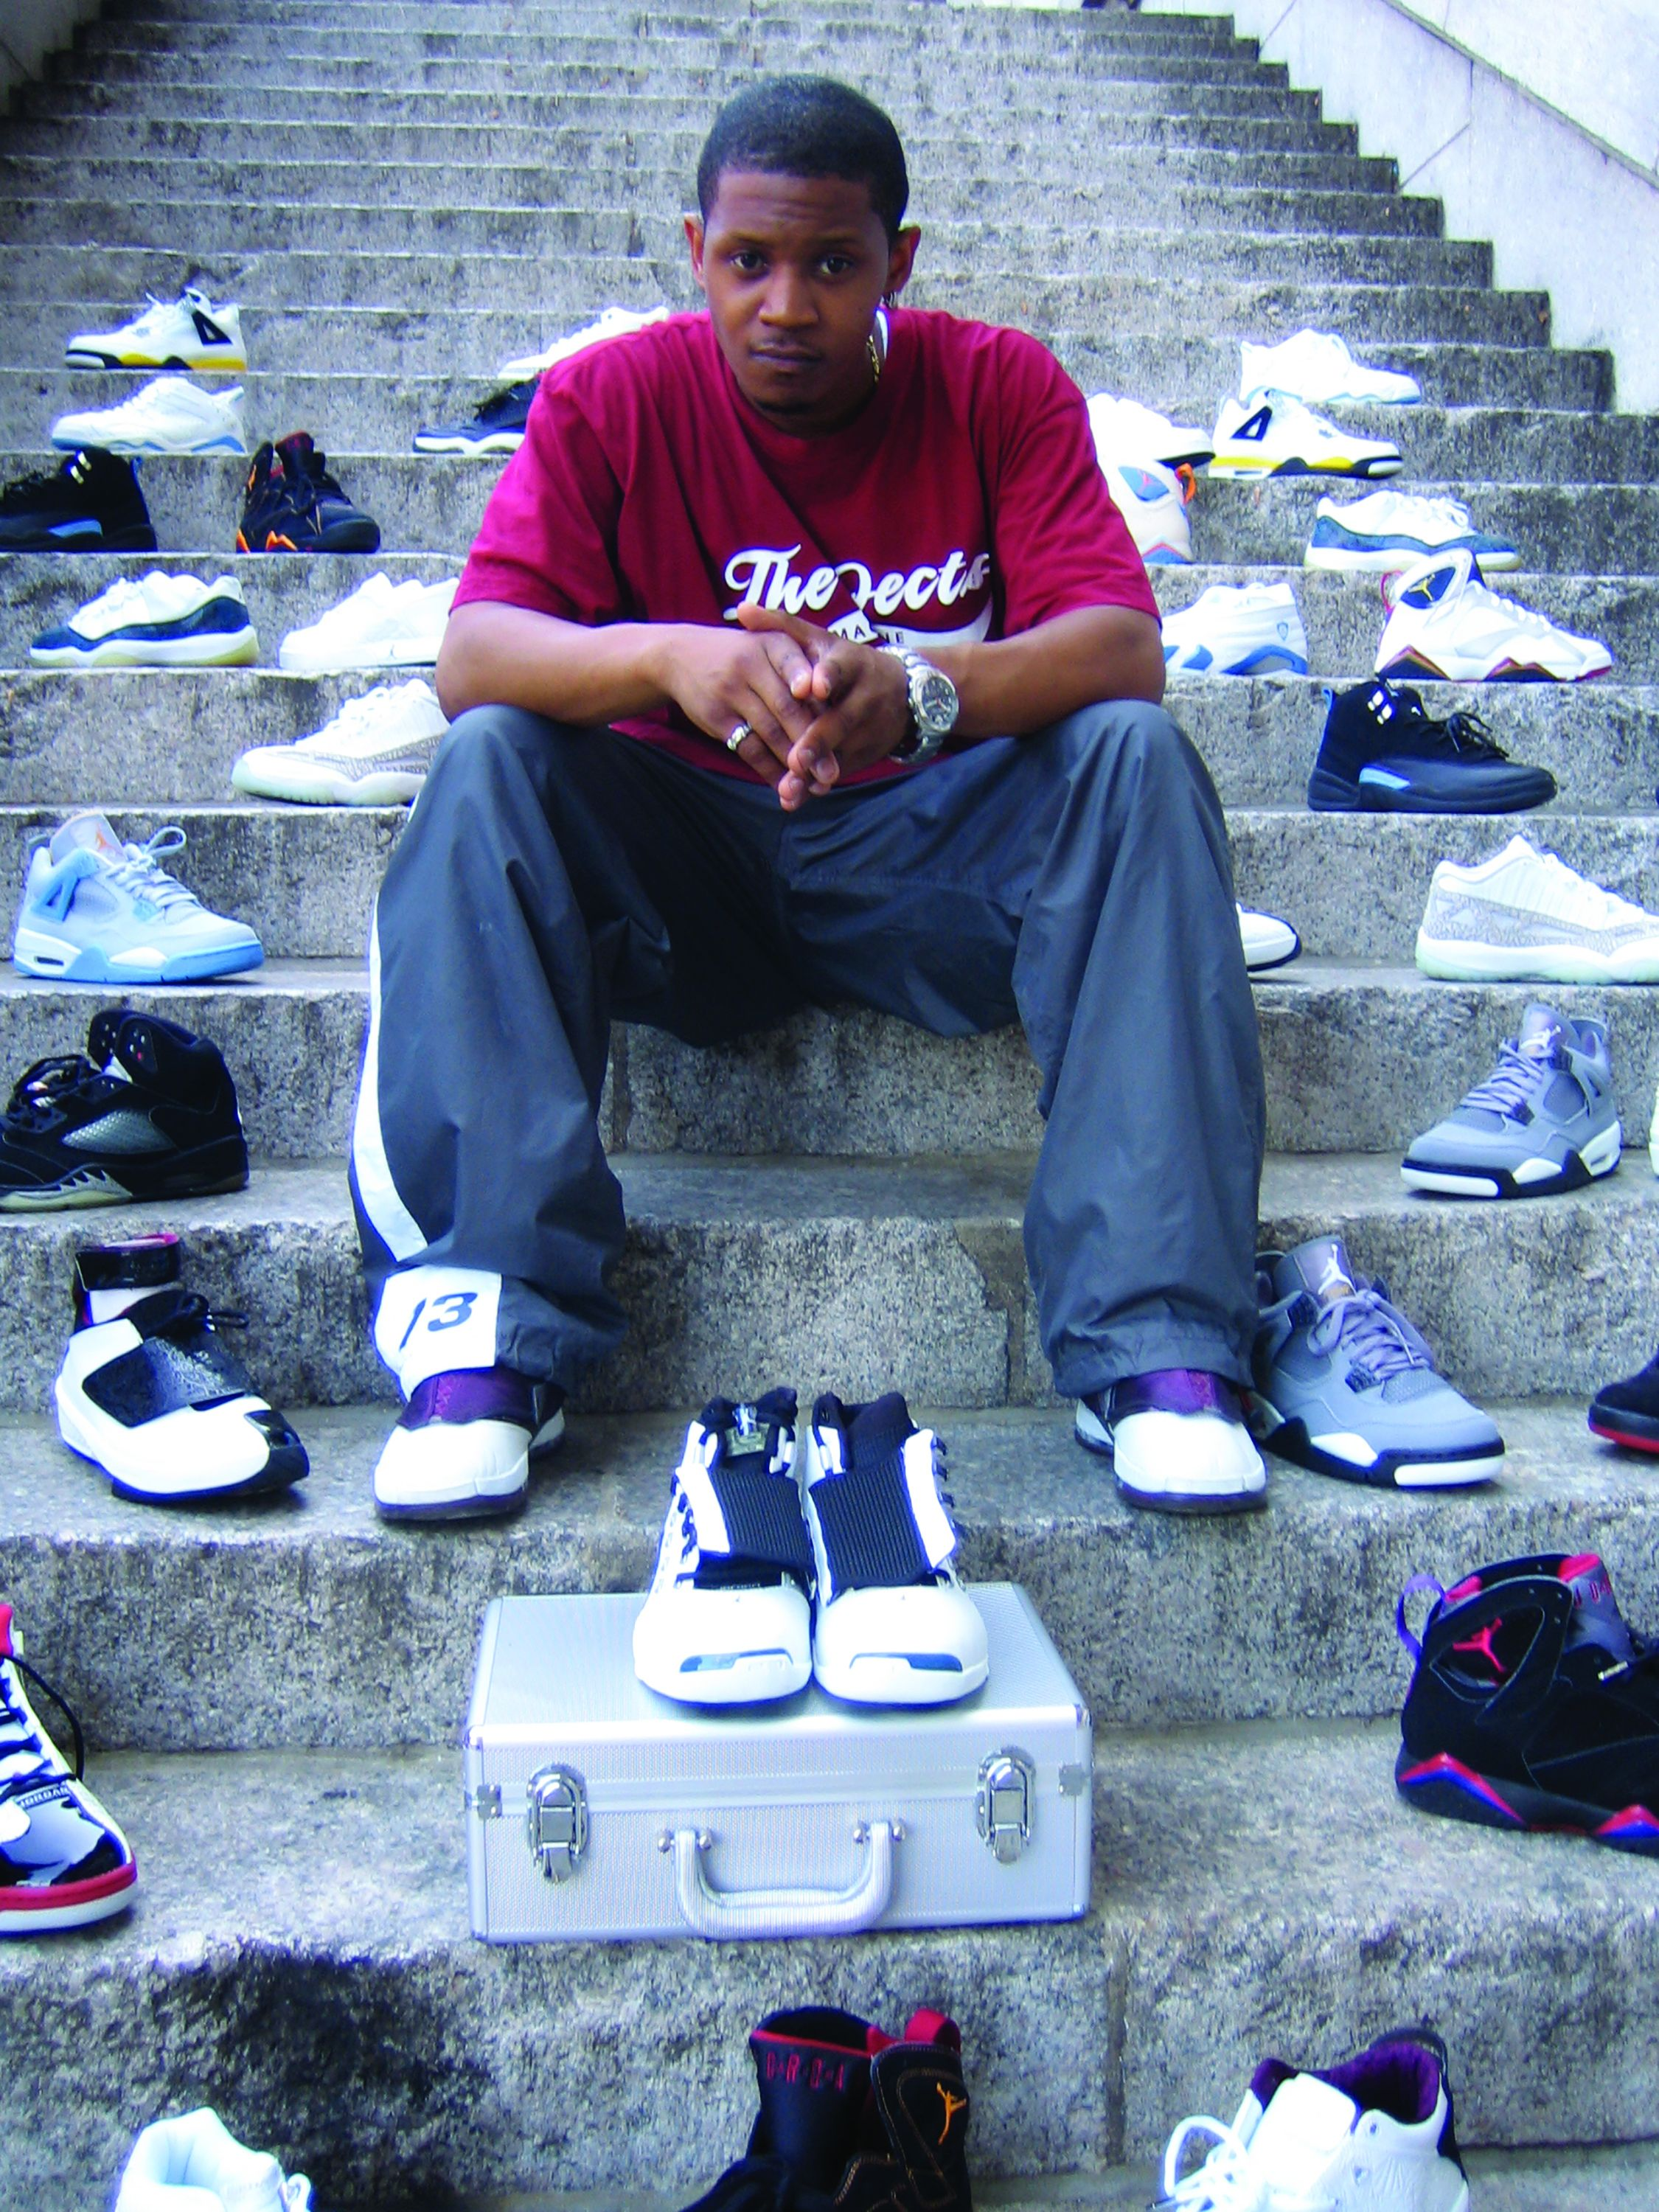 e0c41b12d35 The Significance of Owning a Pair of Air Jordans